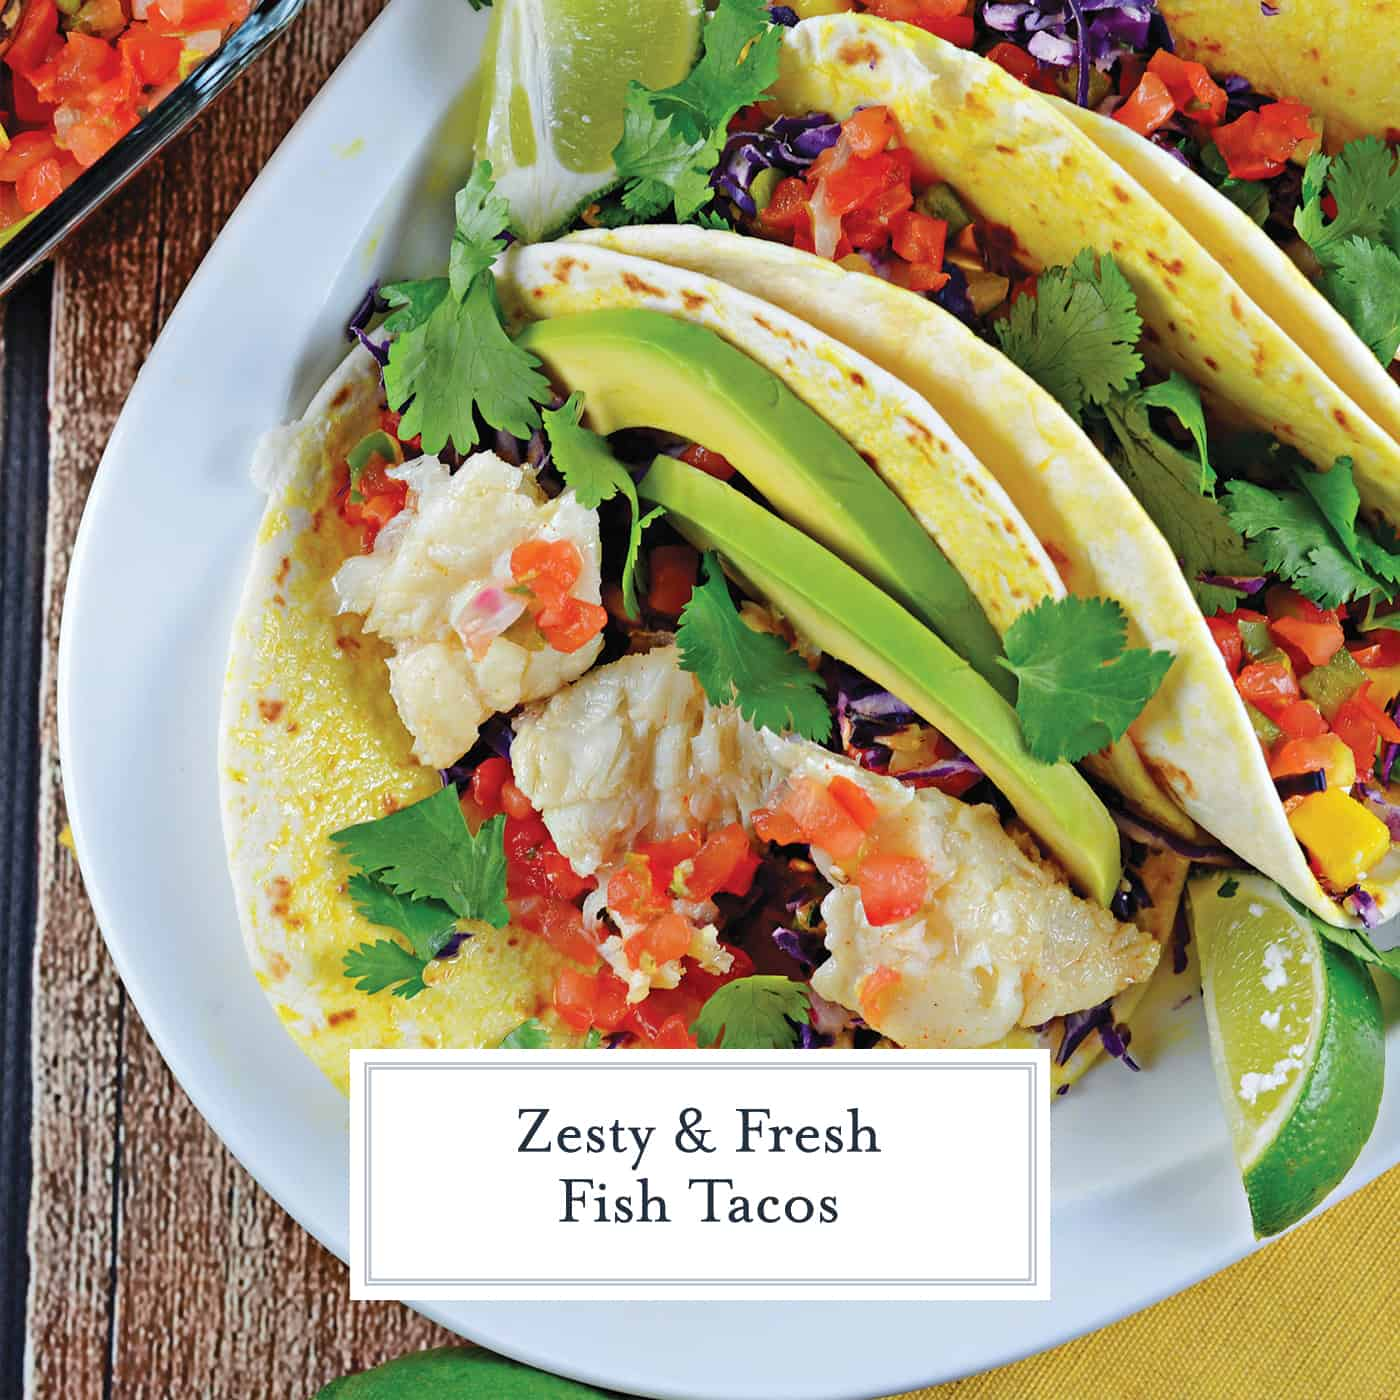 Easy fish taco recipe full of flavor with pico de gallo, shredded cabbage, avocado, queso fresco and a special homemade hot sauce. #fishtacorecipe #bestfishtacos www.savoryexperiments.com